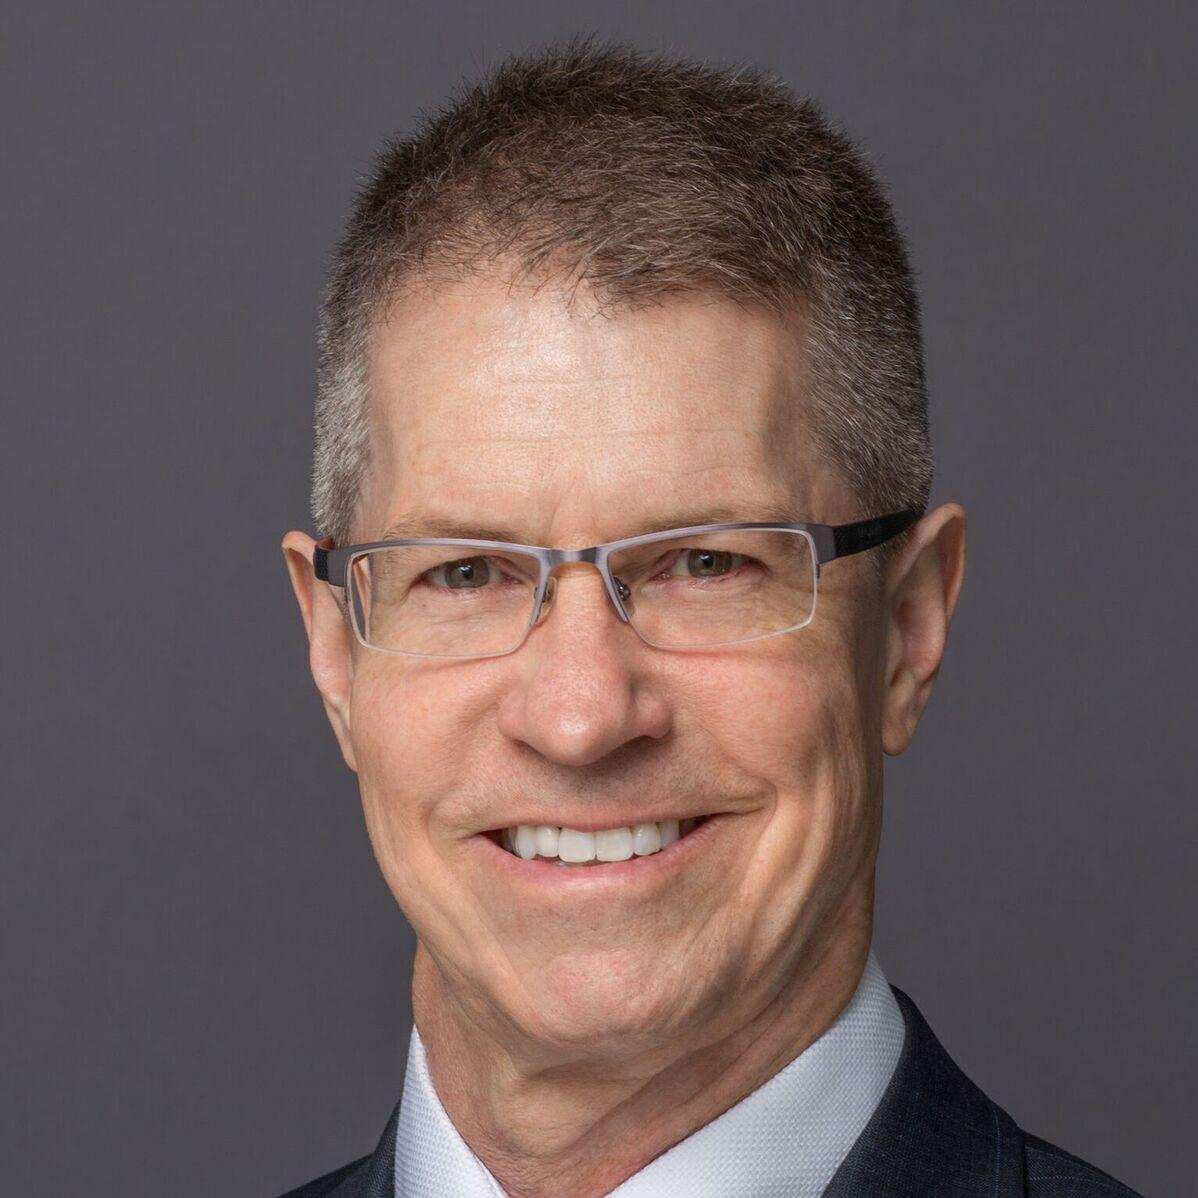 GrantSnider-MeetingEscrow-Headshot.jpg